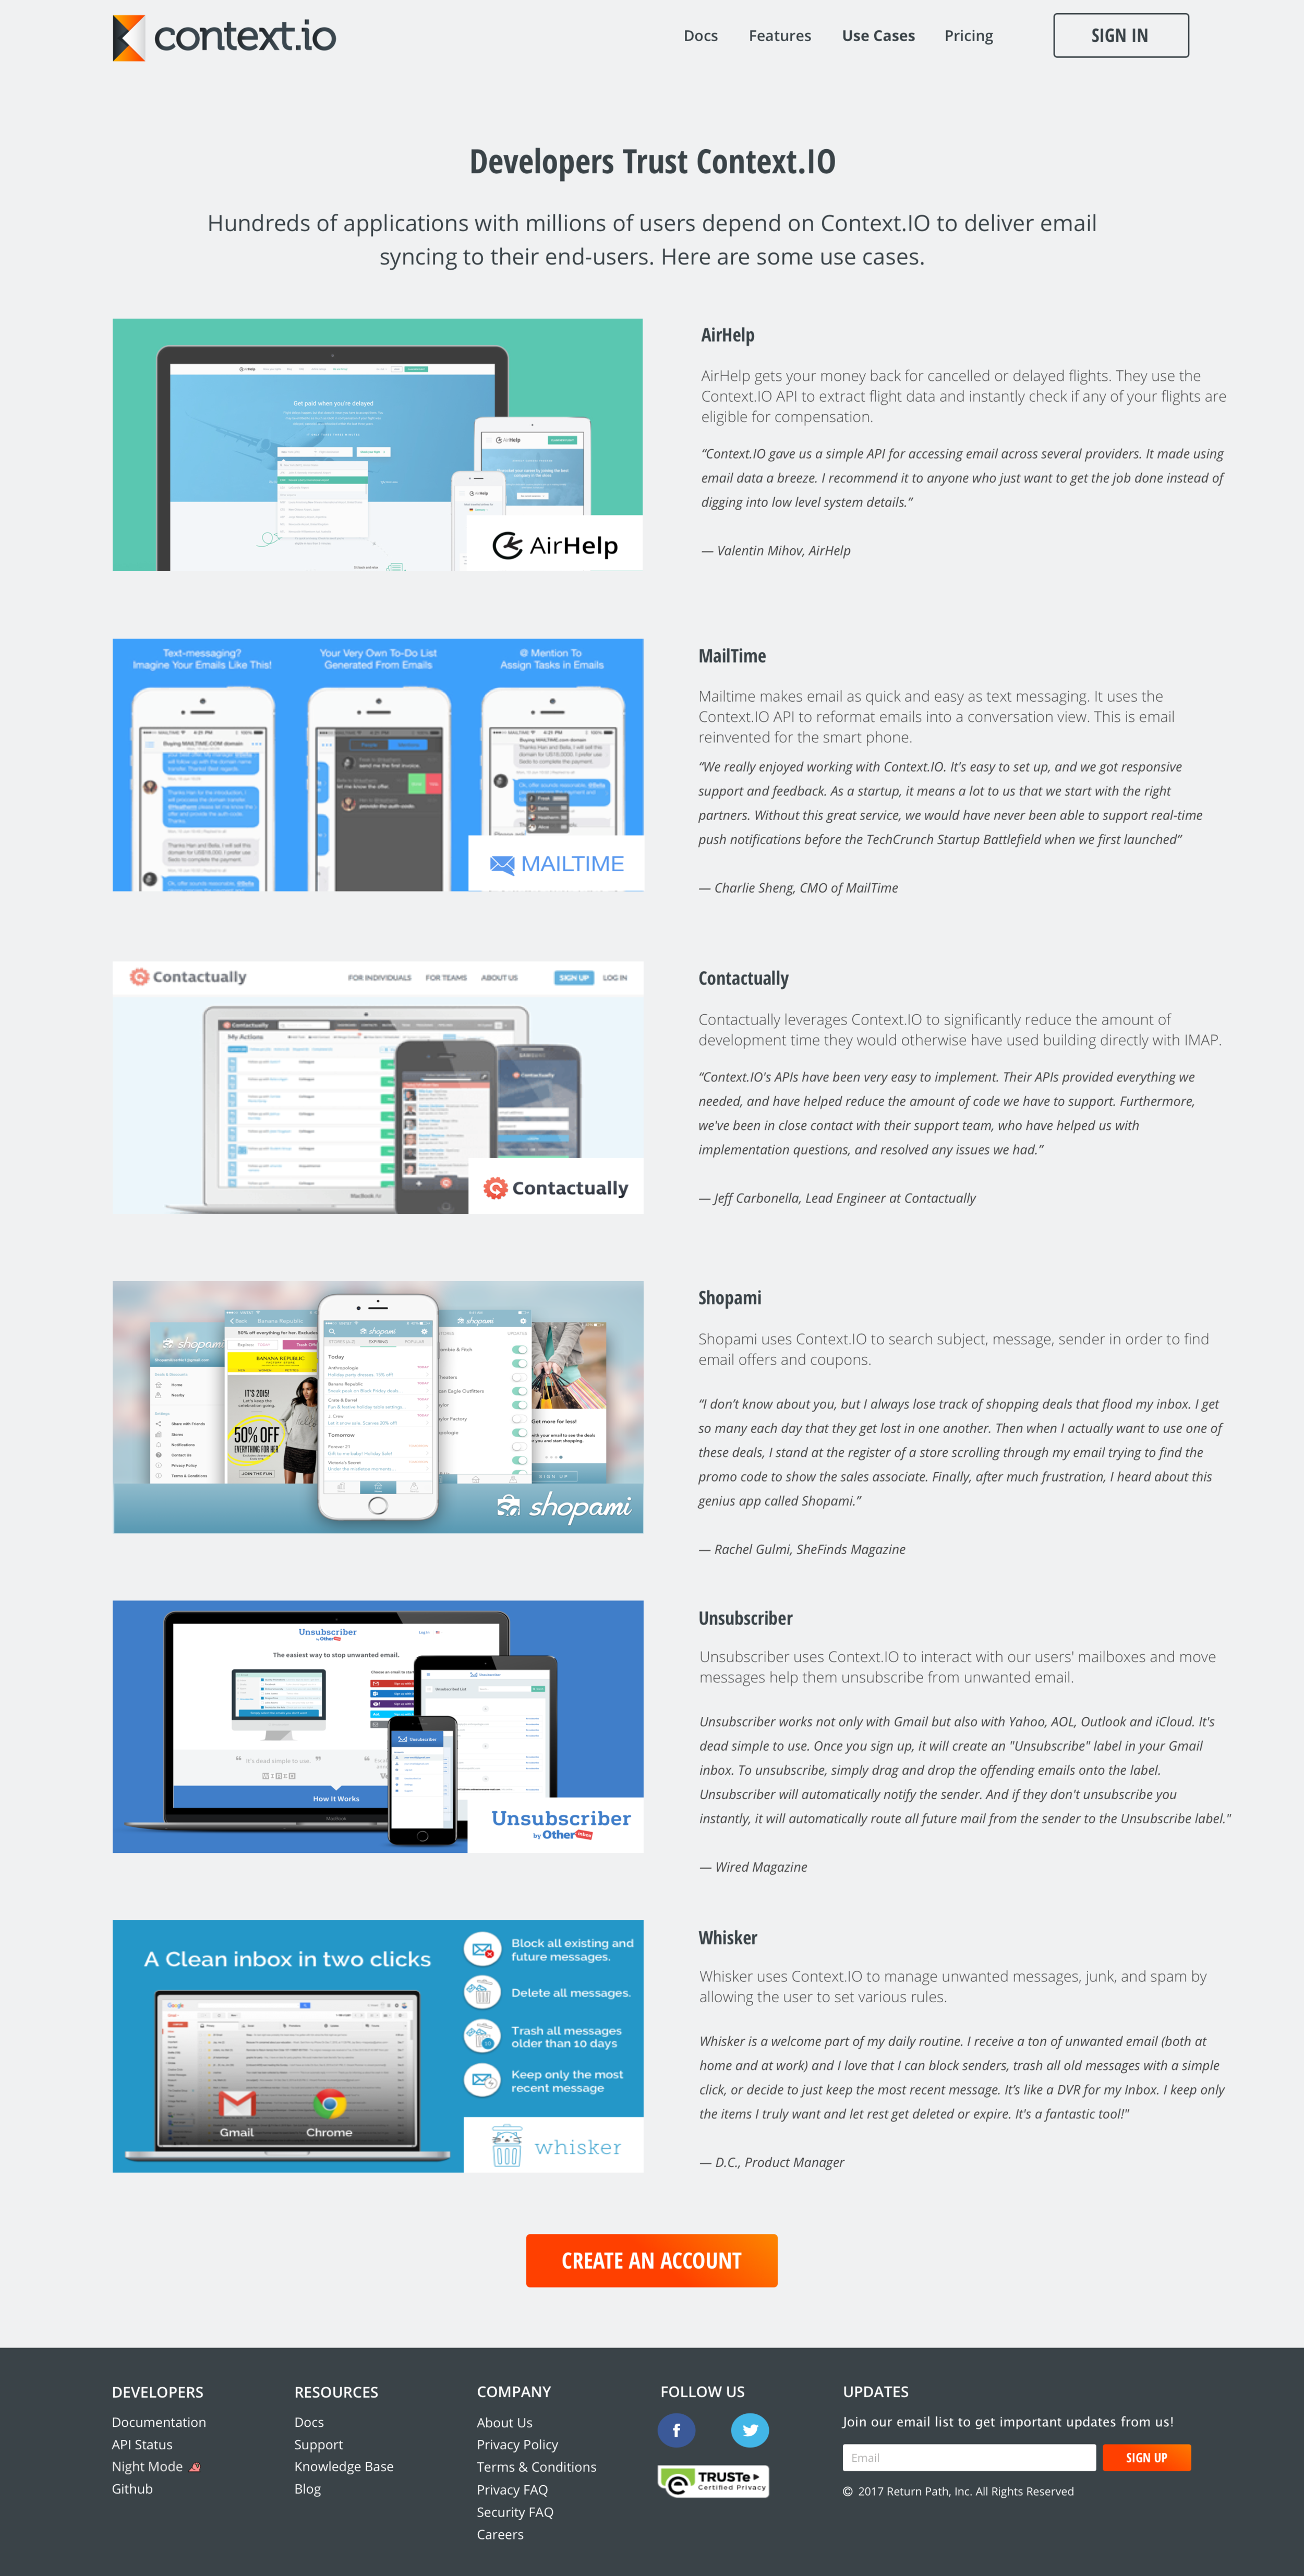 Use Cases@2x.png